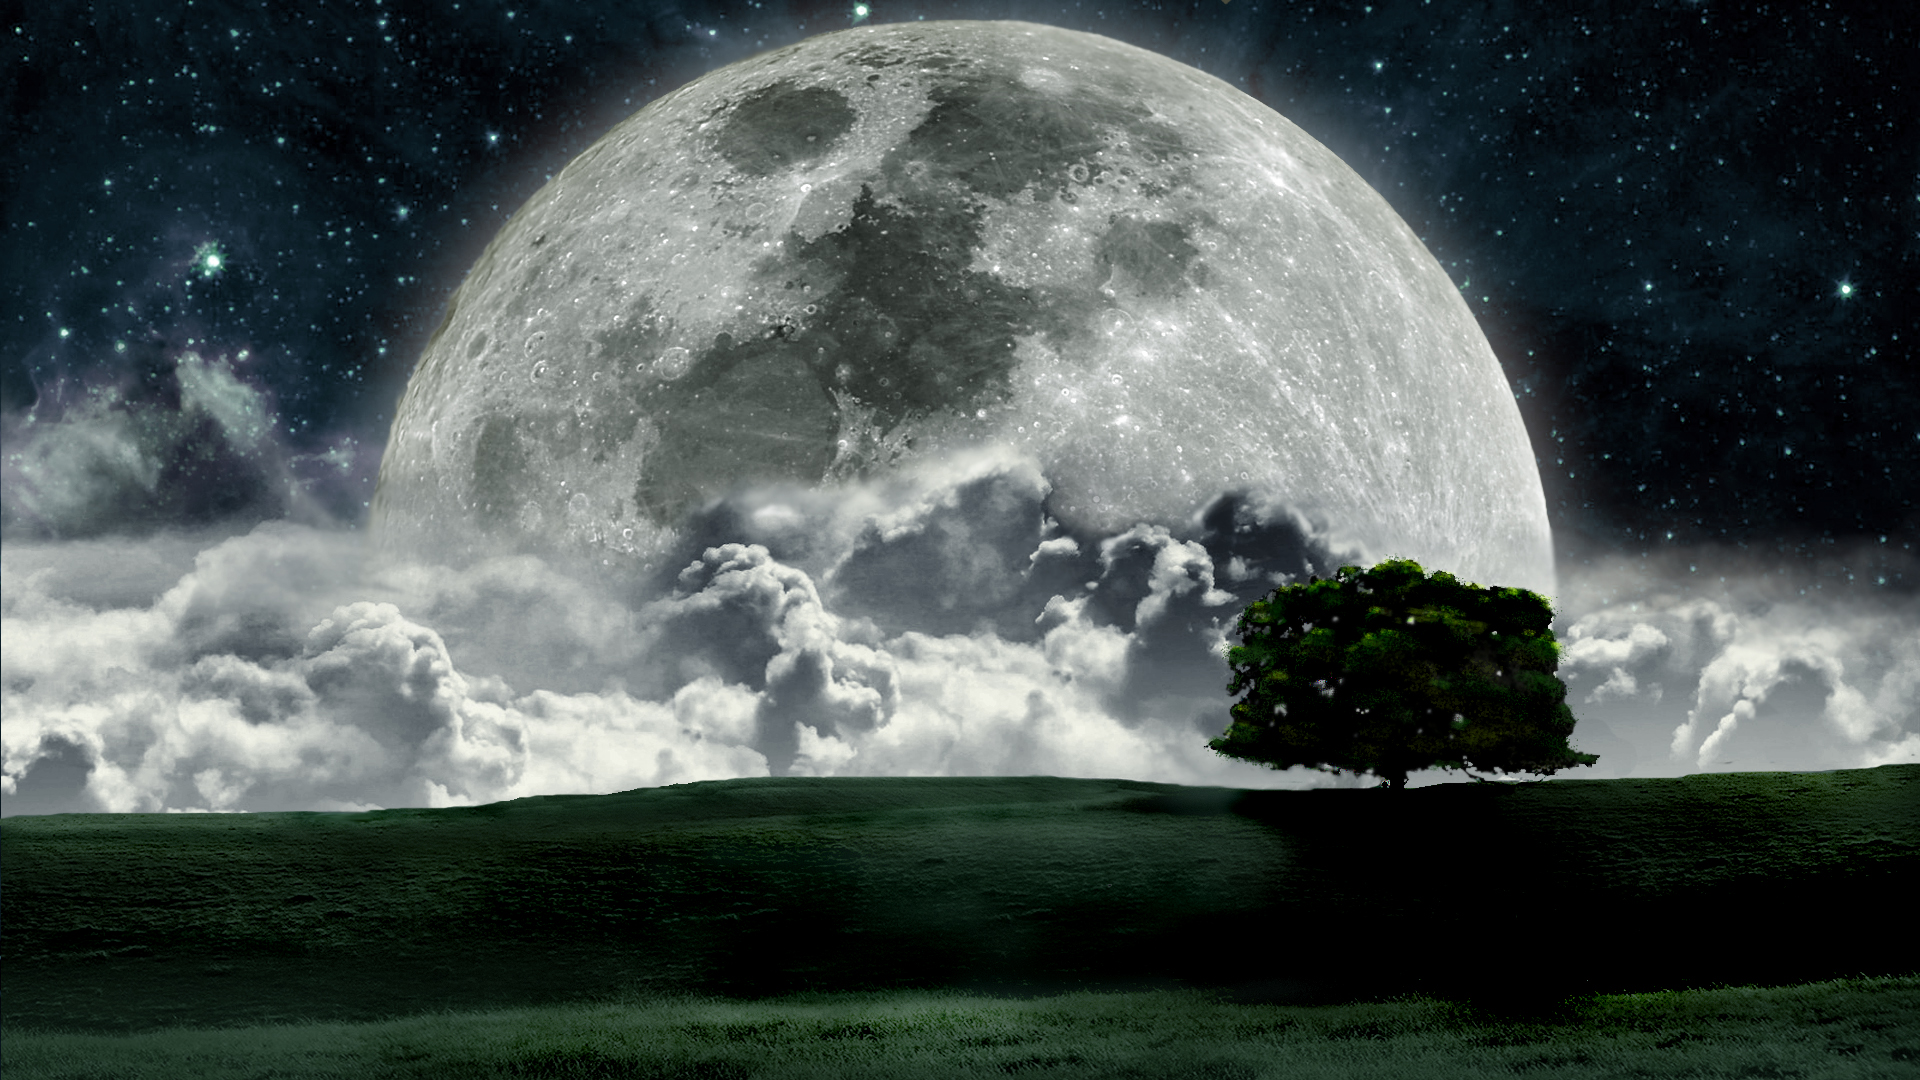 moon enigmatic wallpapers templates wallpaer website wallpaper 1920x1080